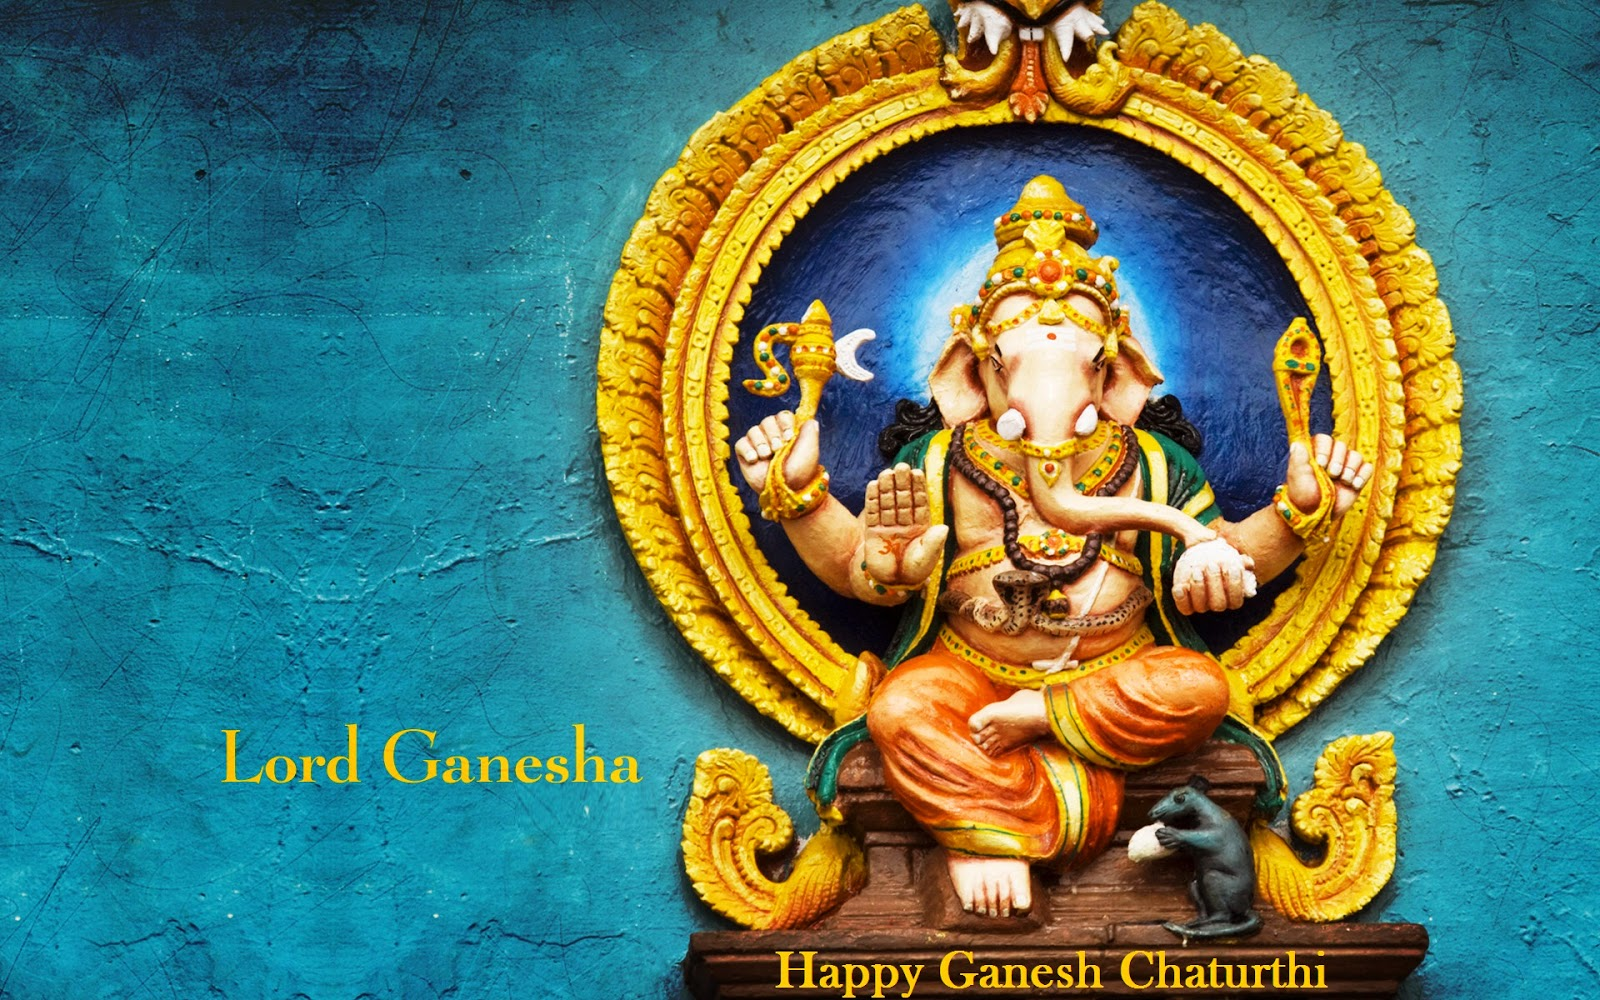 Lord Ganesha Pictures Download: Ganesh Chaturthi Wallpapers For Mobile & PC Free Download